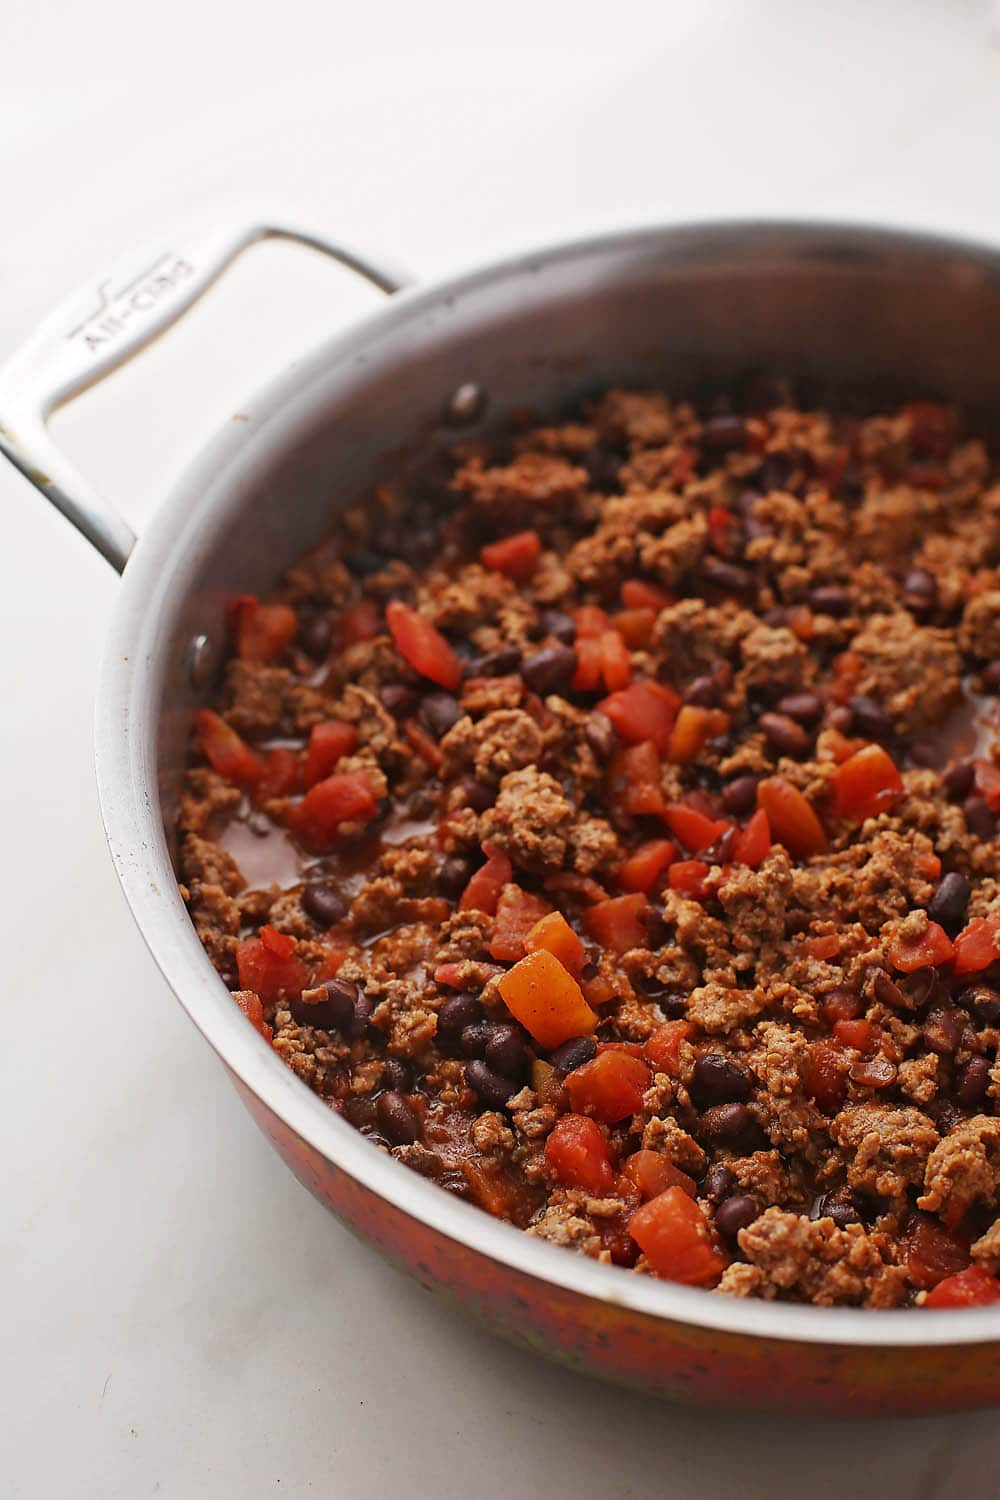 meat sauce in the skillet